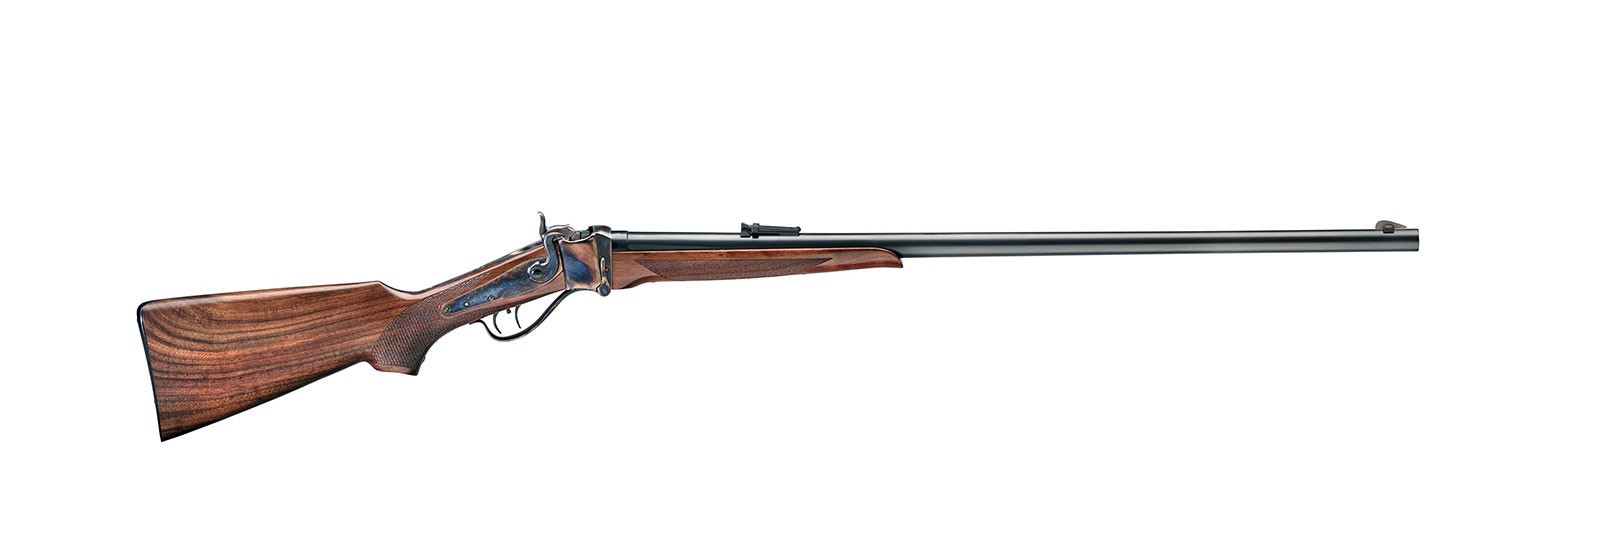 1877 Sharps Overbough Long Range 30""